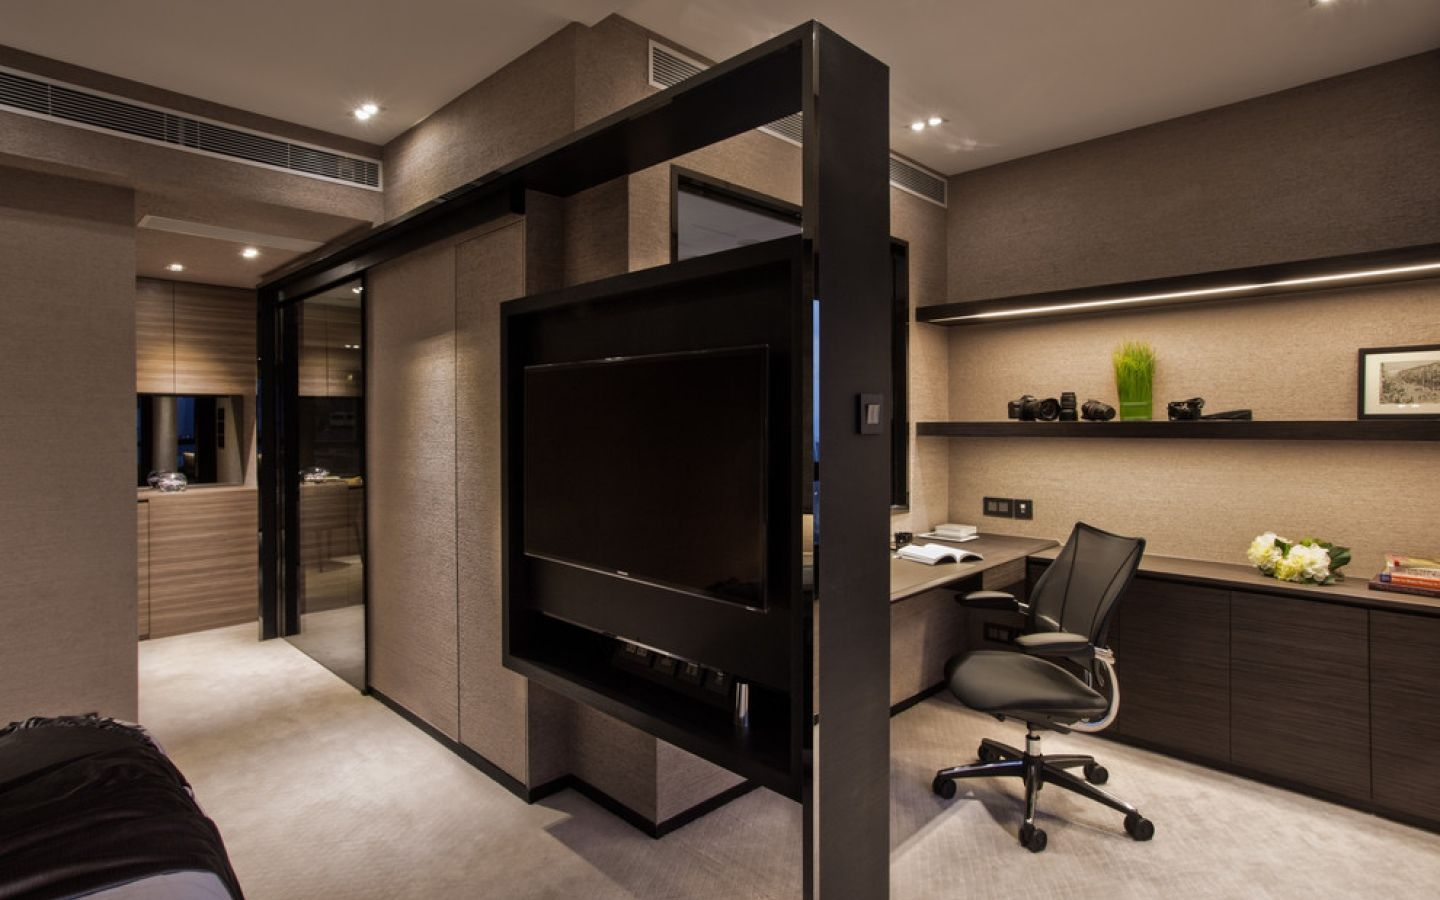 Interior Partition Ideas Interior Partitions Room Zoning Design Ideas Home Office In Dark